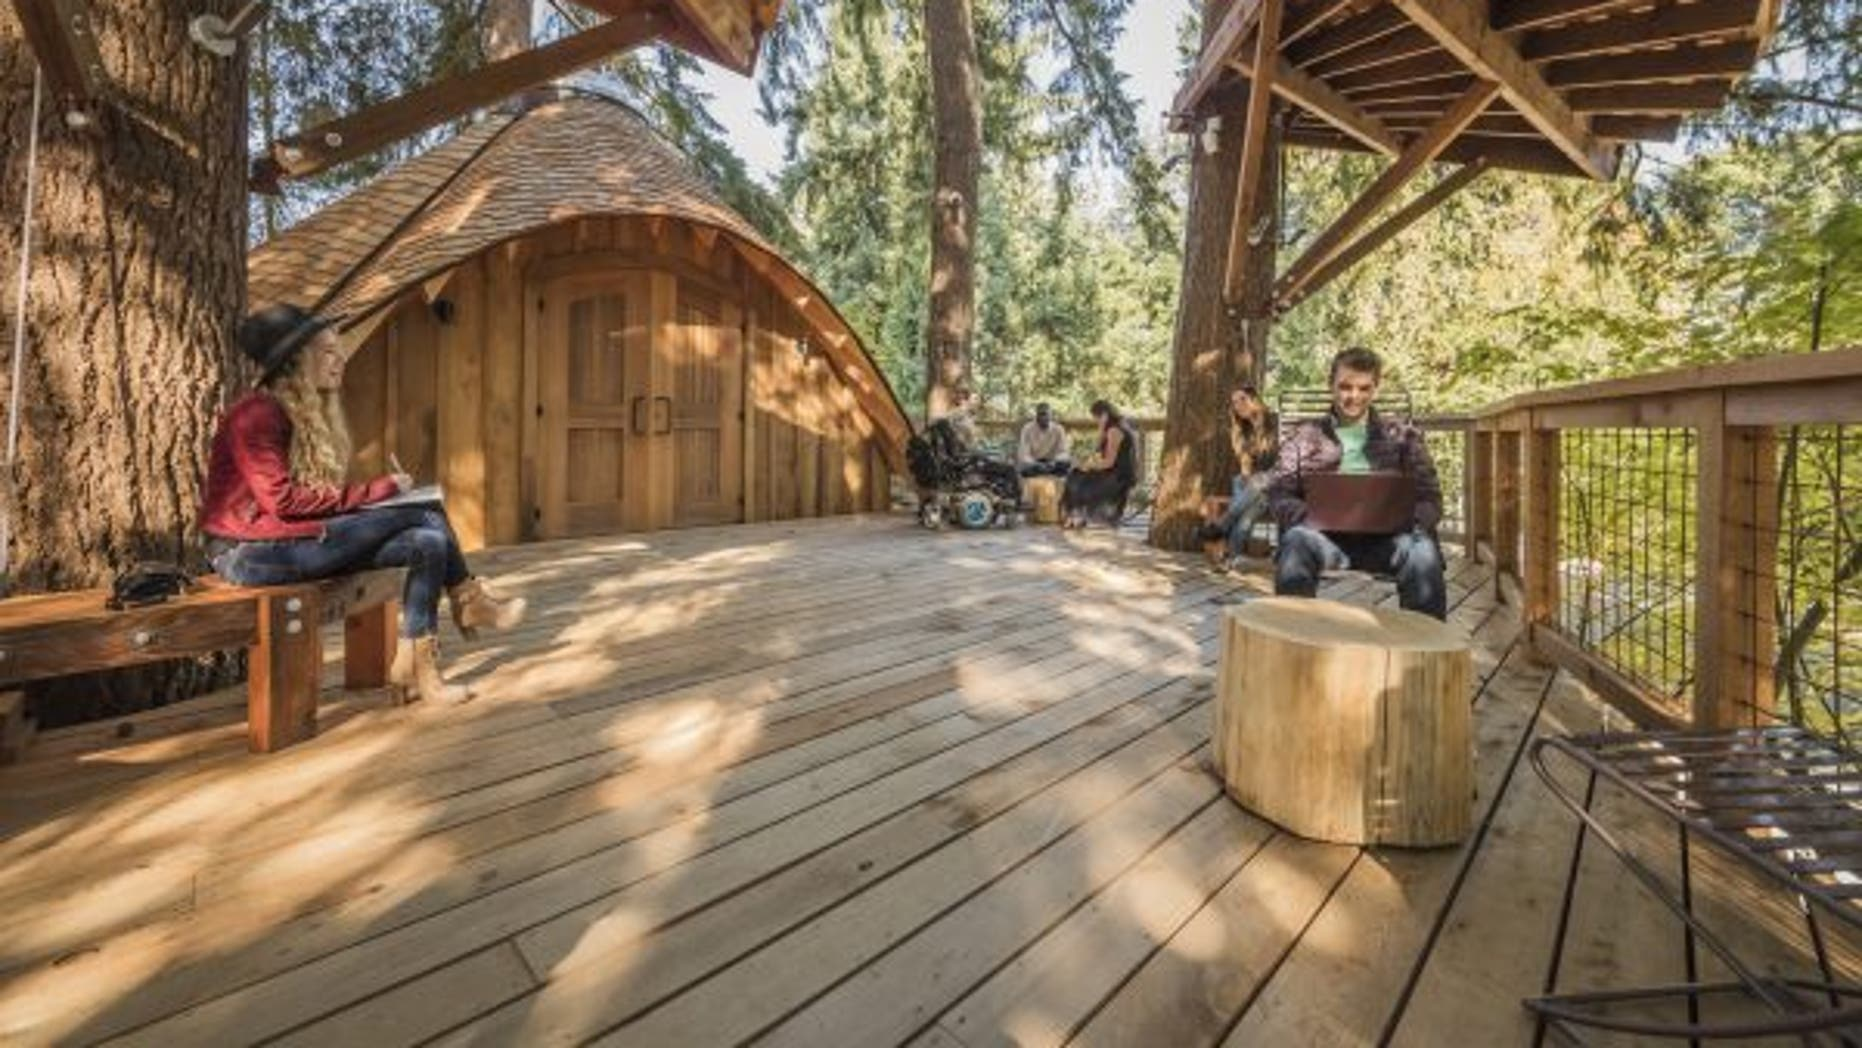 Microsoft's treehouse outdoor meeting spaces (Microsoft)